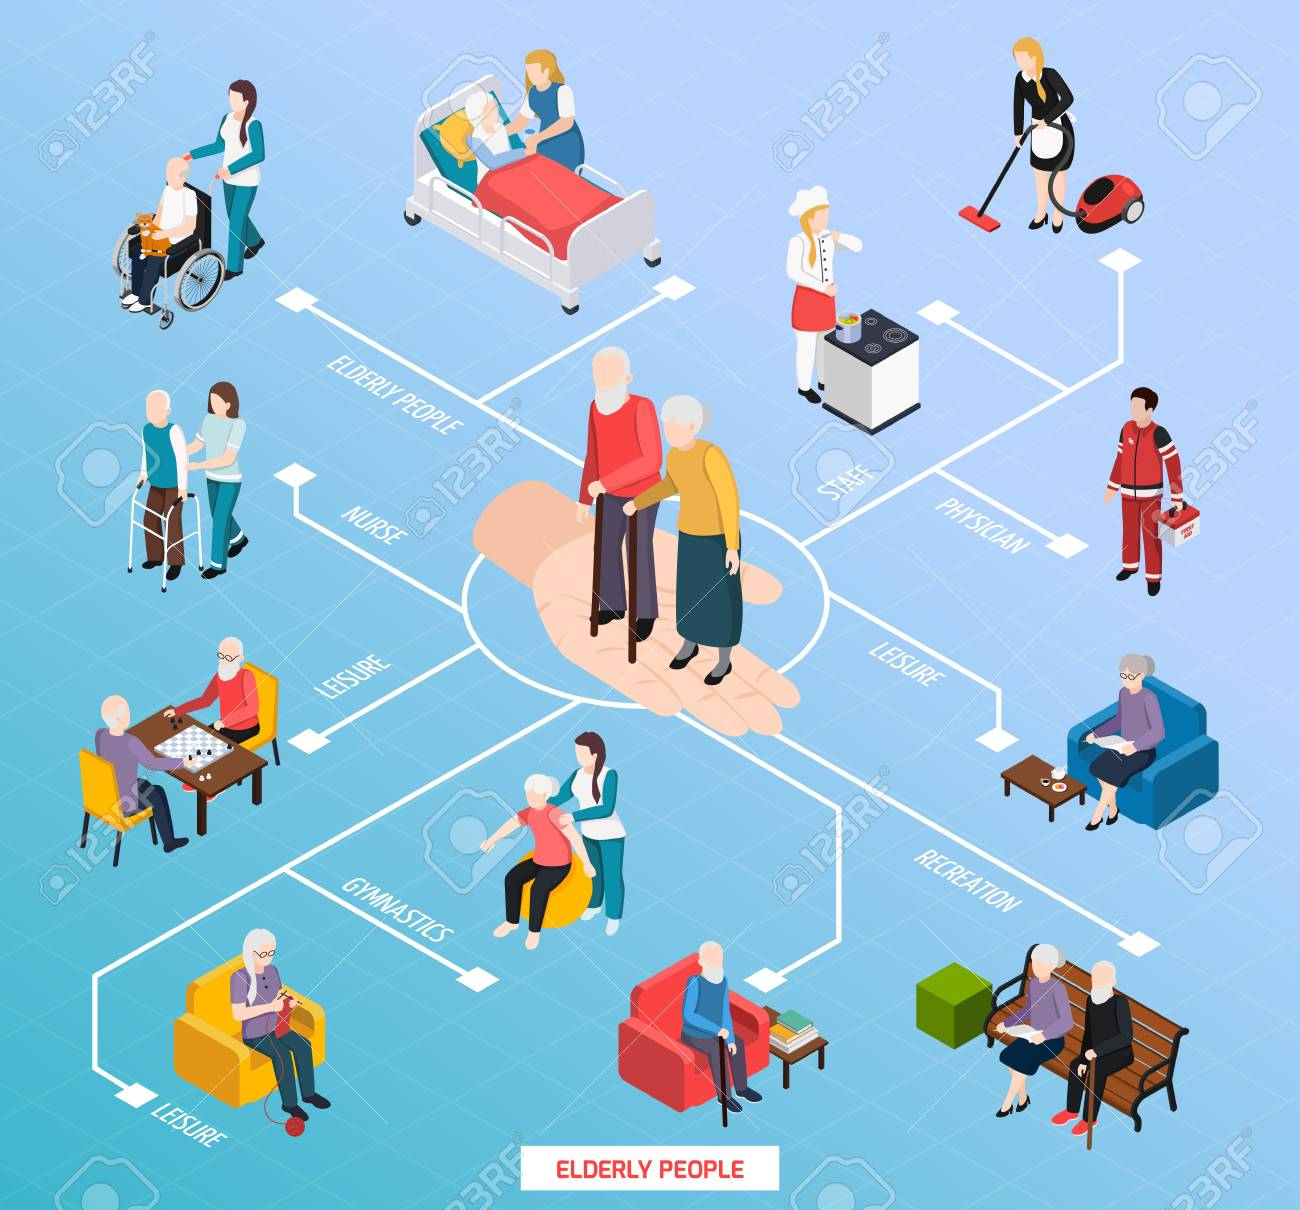 Elderly people nursing home assistance isometric flowchart with medical care recreation gym physical activities leisure vector illustration - 106211966